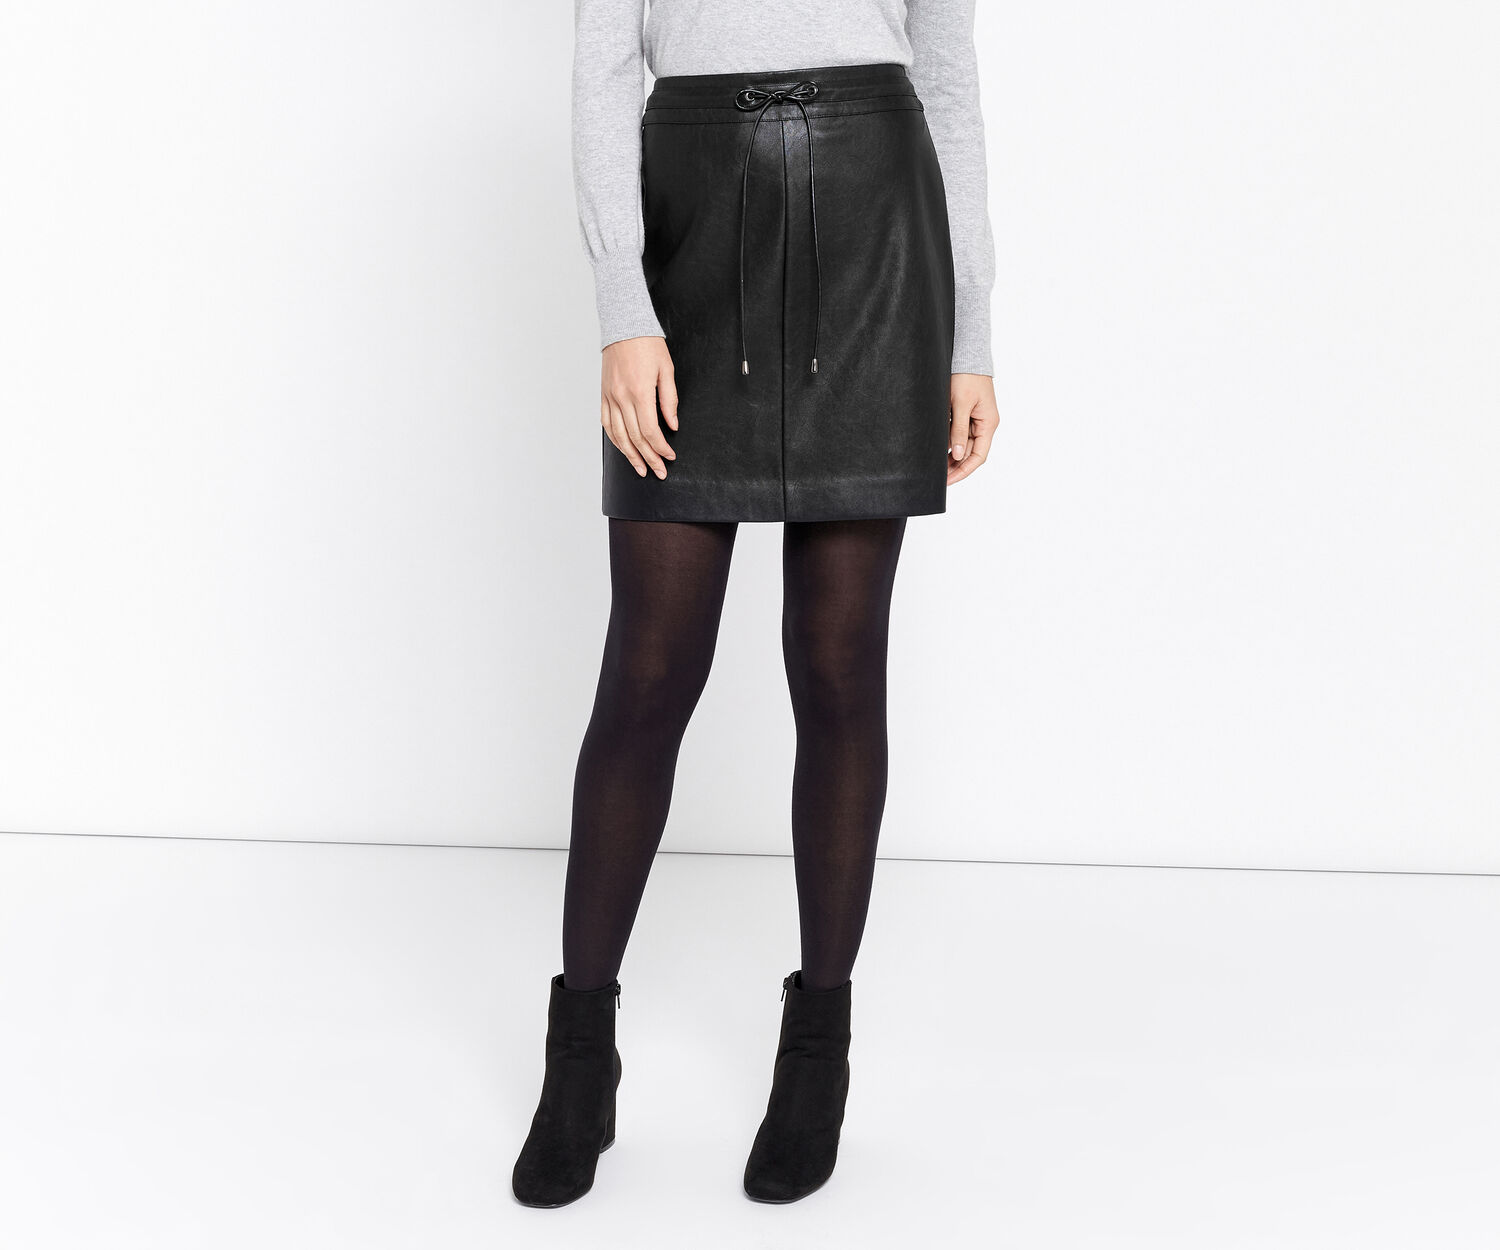 Oasis, FAUX LEATHER DRAWSTRING SKIRT Black 1